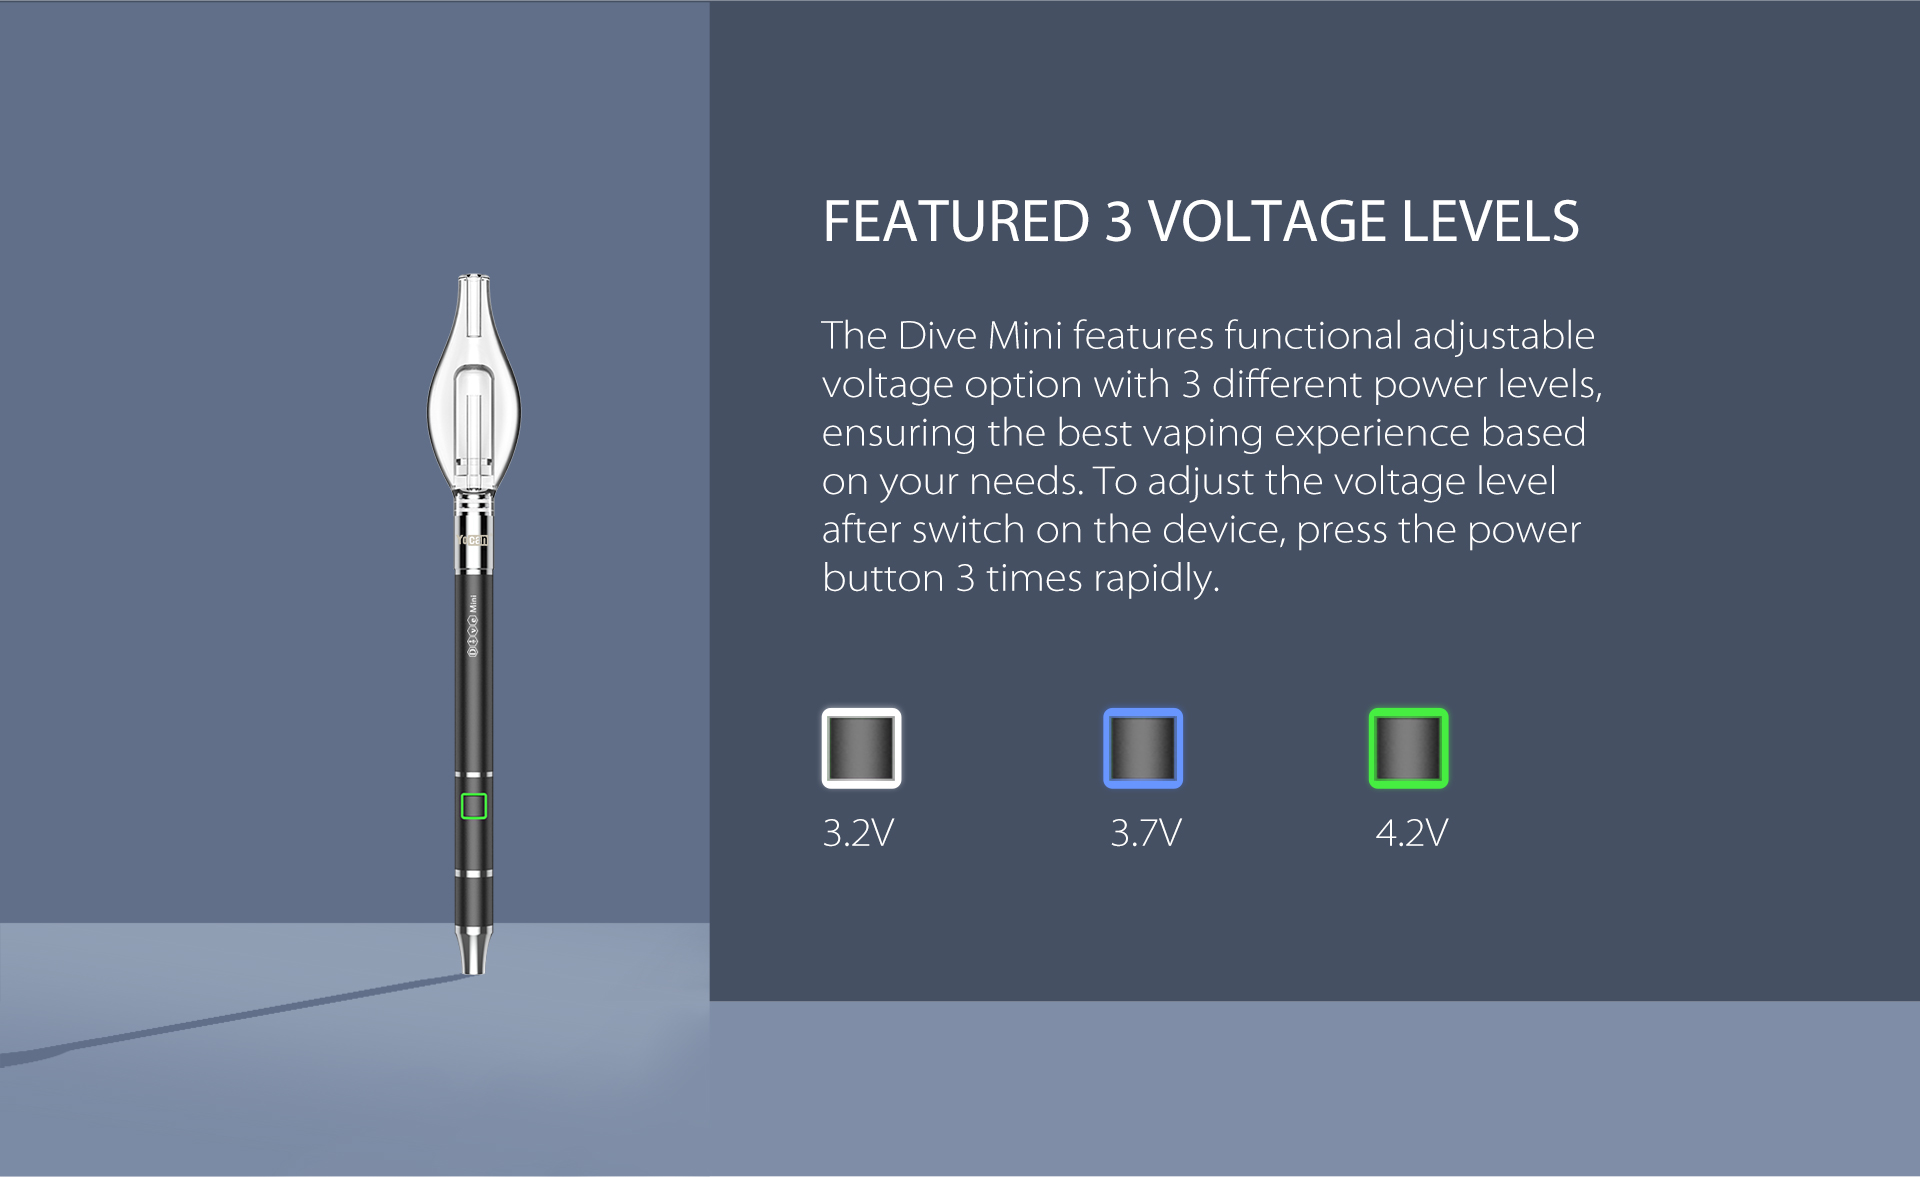 The Dive Mini features functional adjustable voltage option with 3 different power levels.